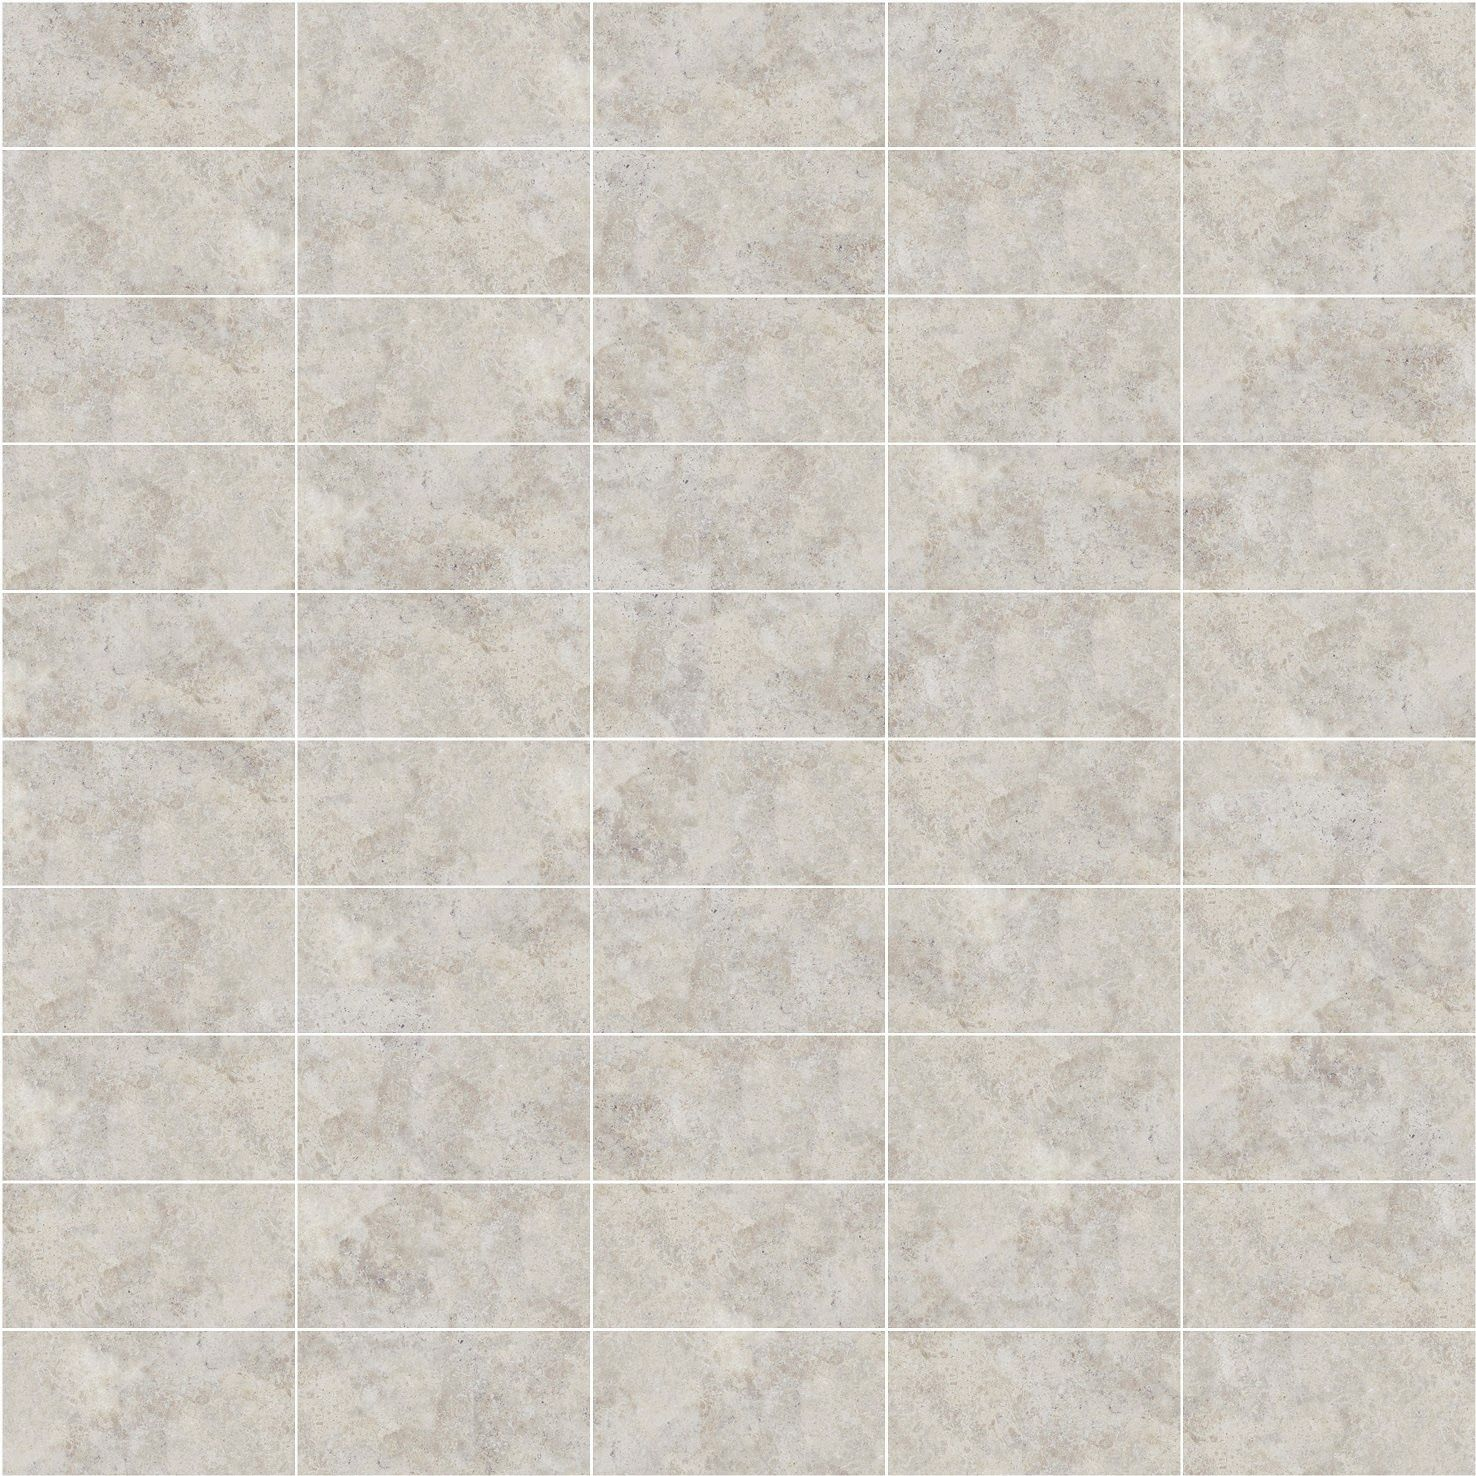 ceramic tile texture seamless texture seamless marble floor tile HXVIPVX